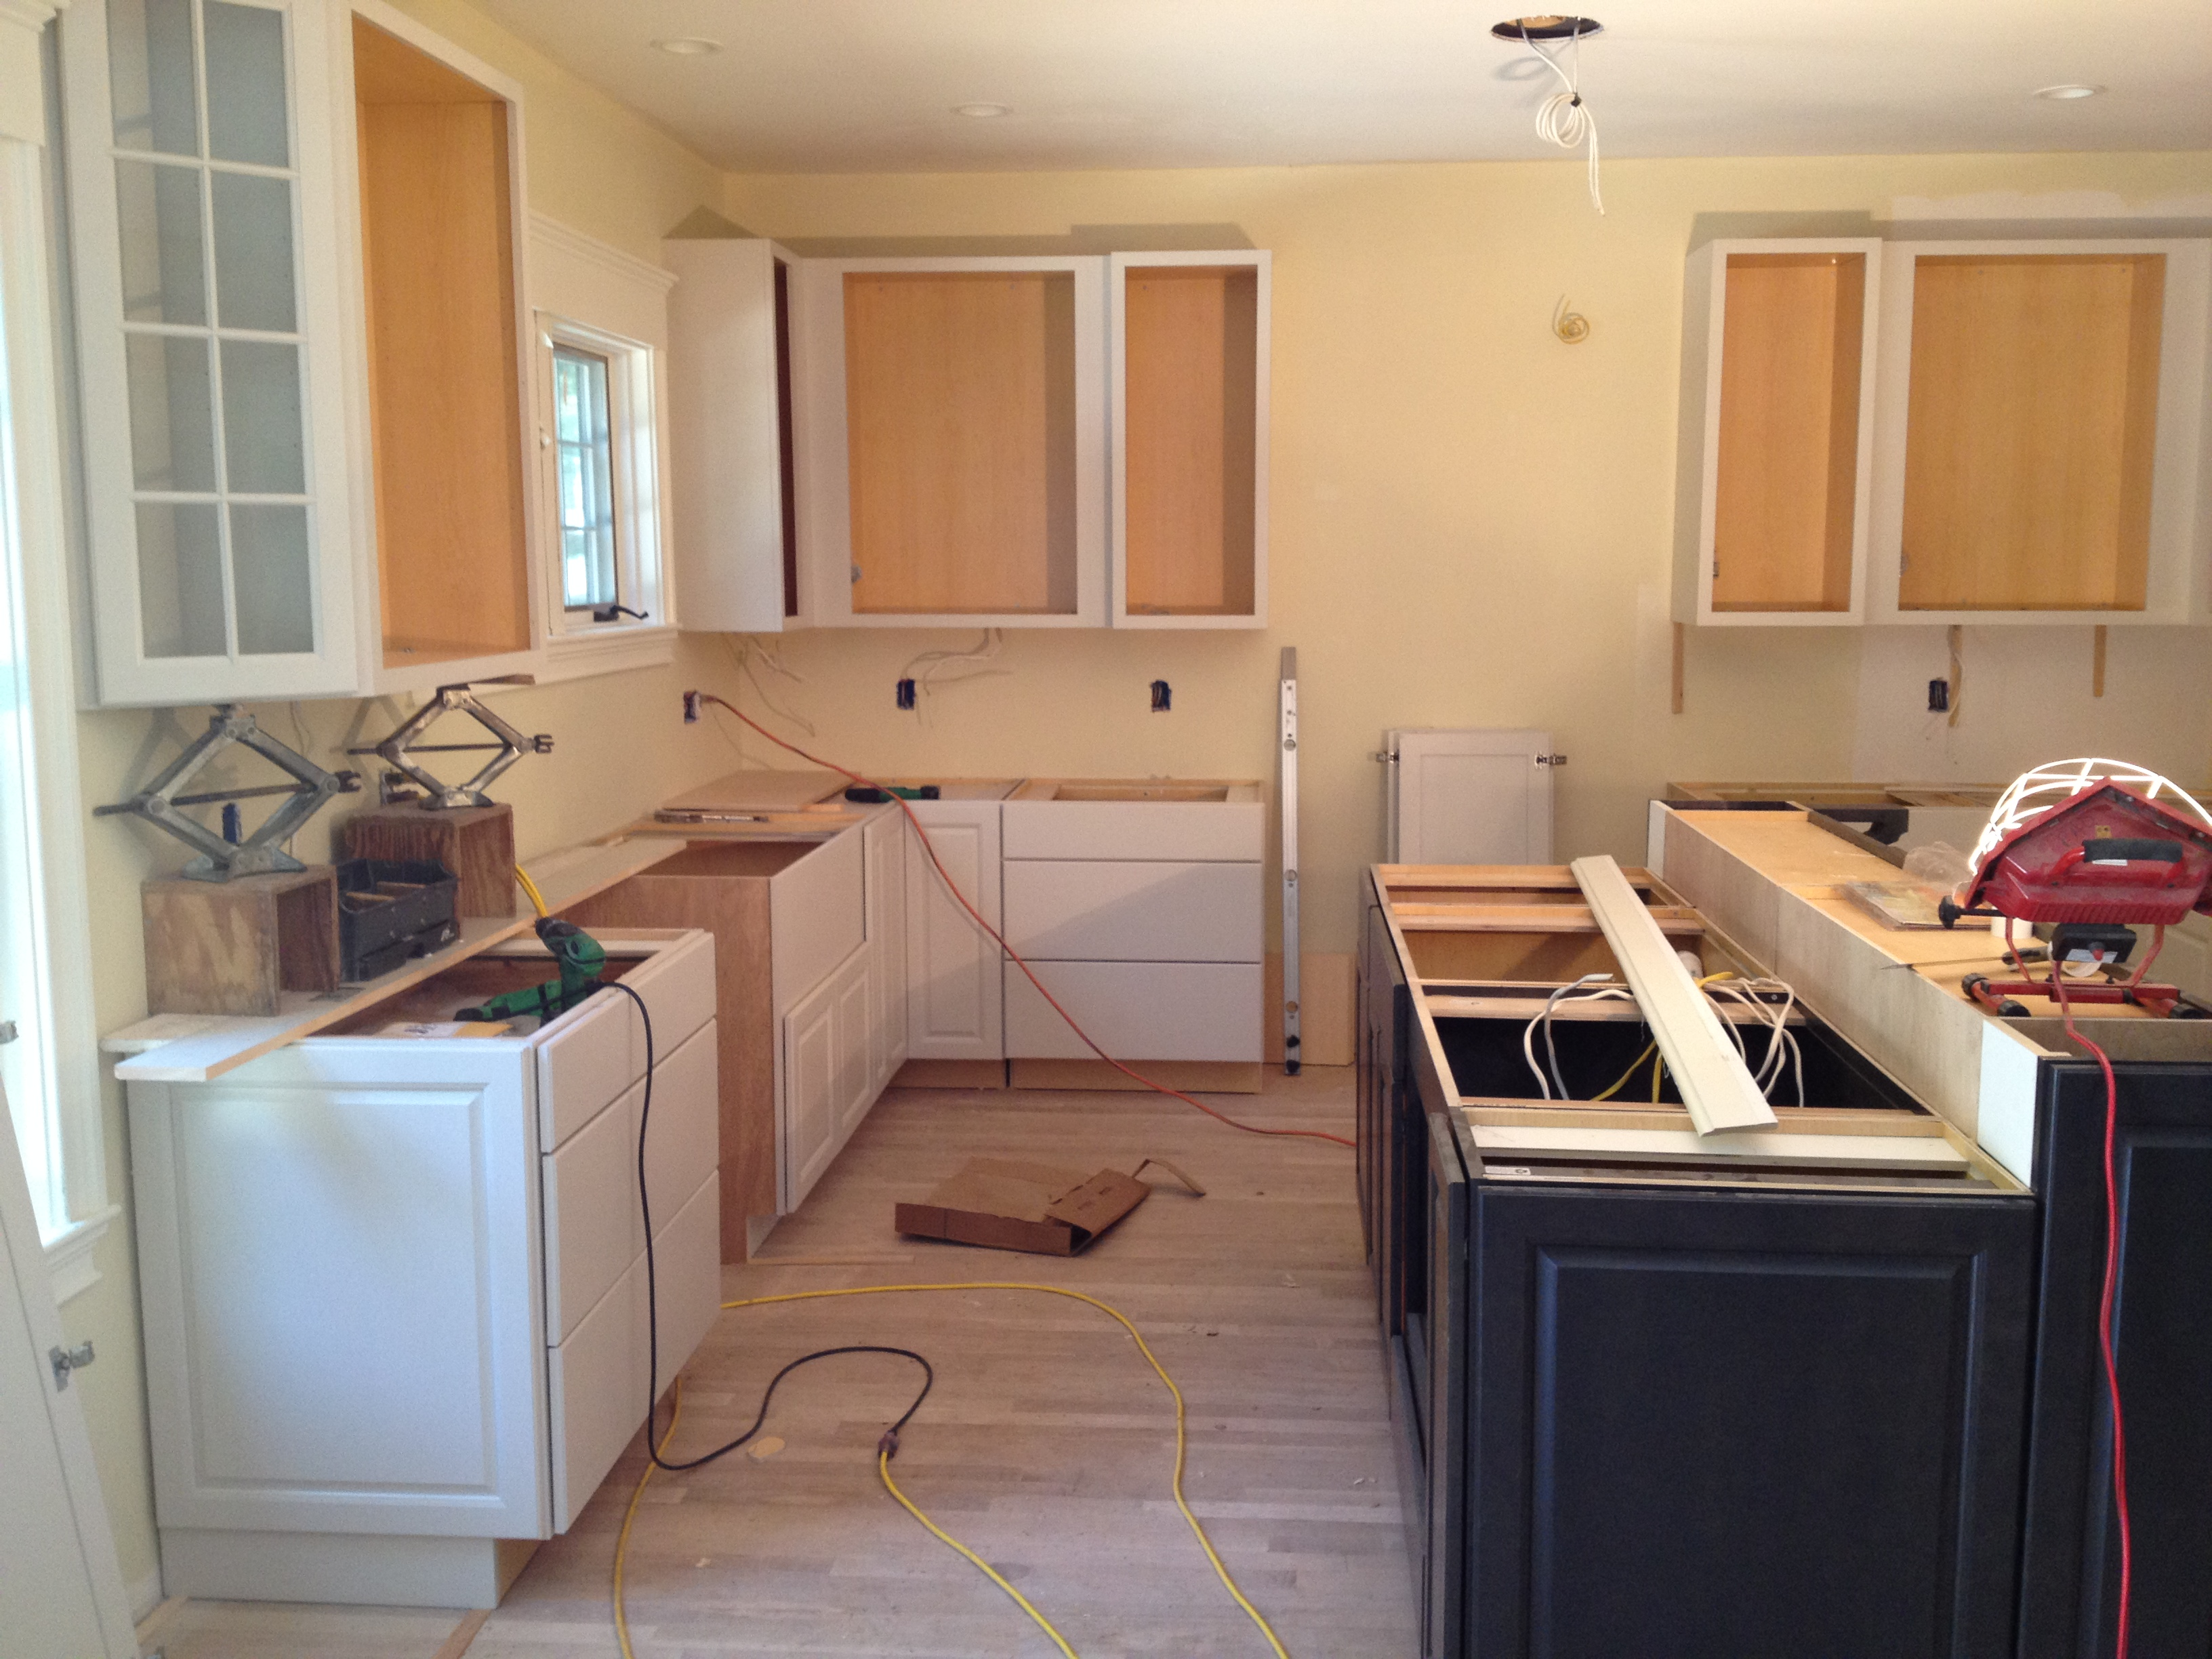 Building Blocks of Our New Kitchen – Interiors for Families